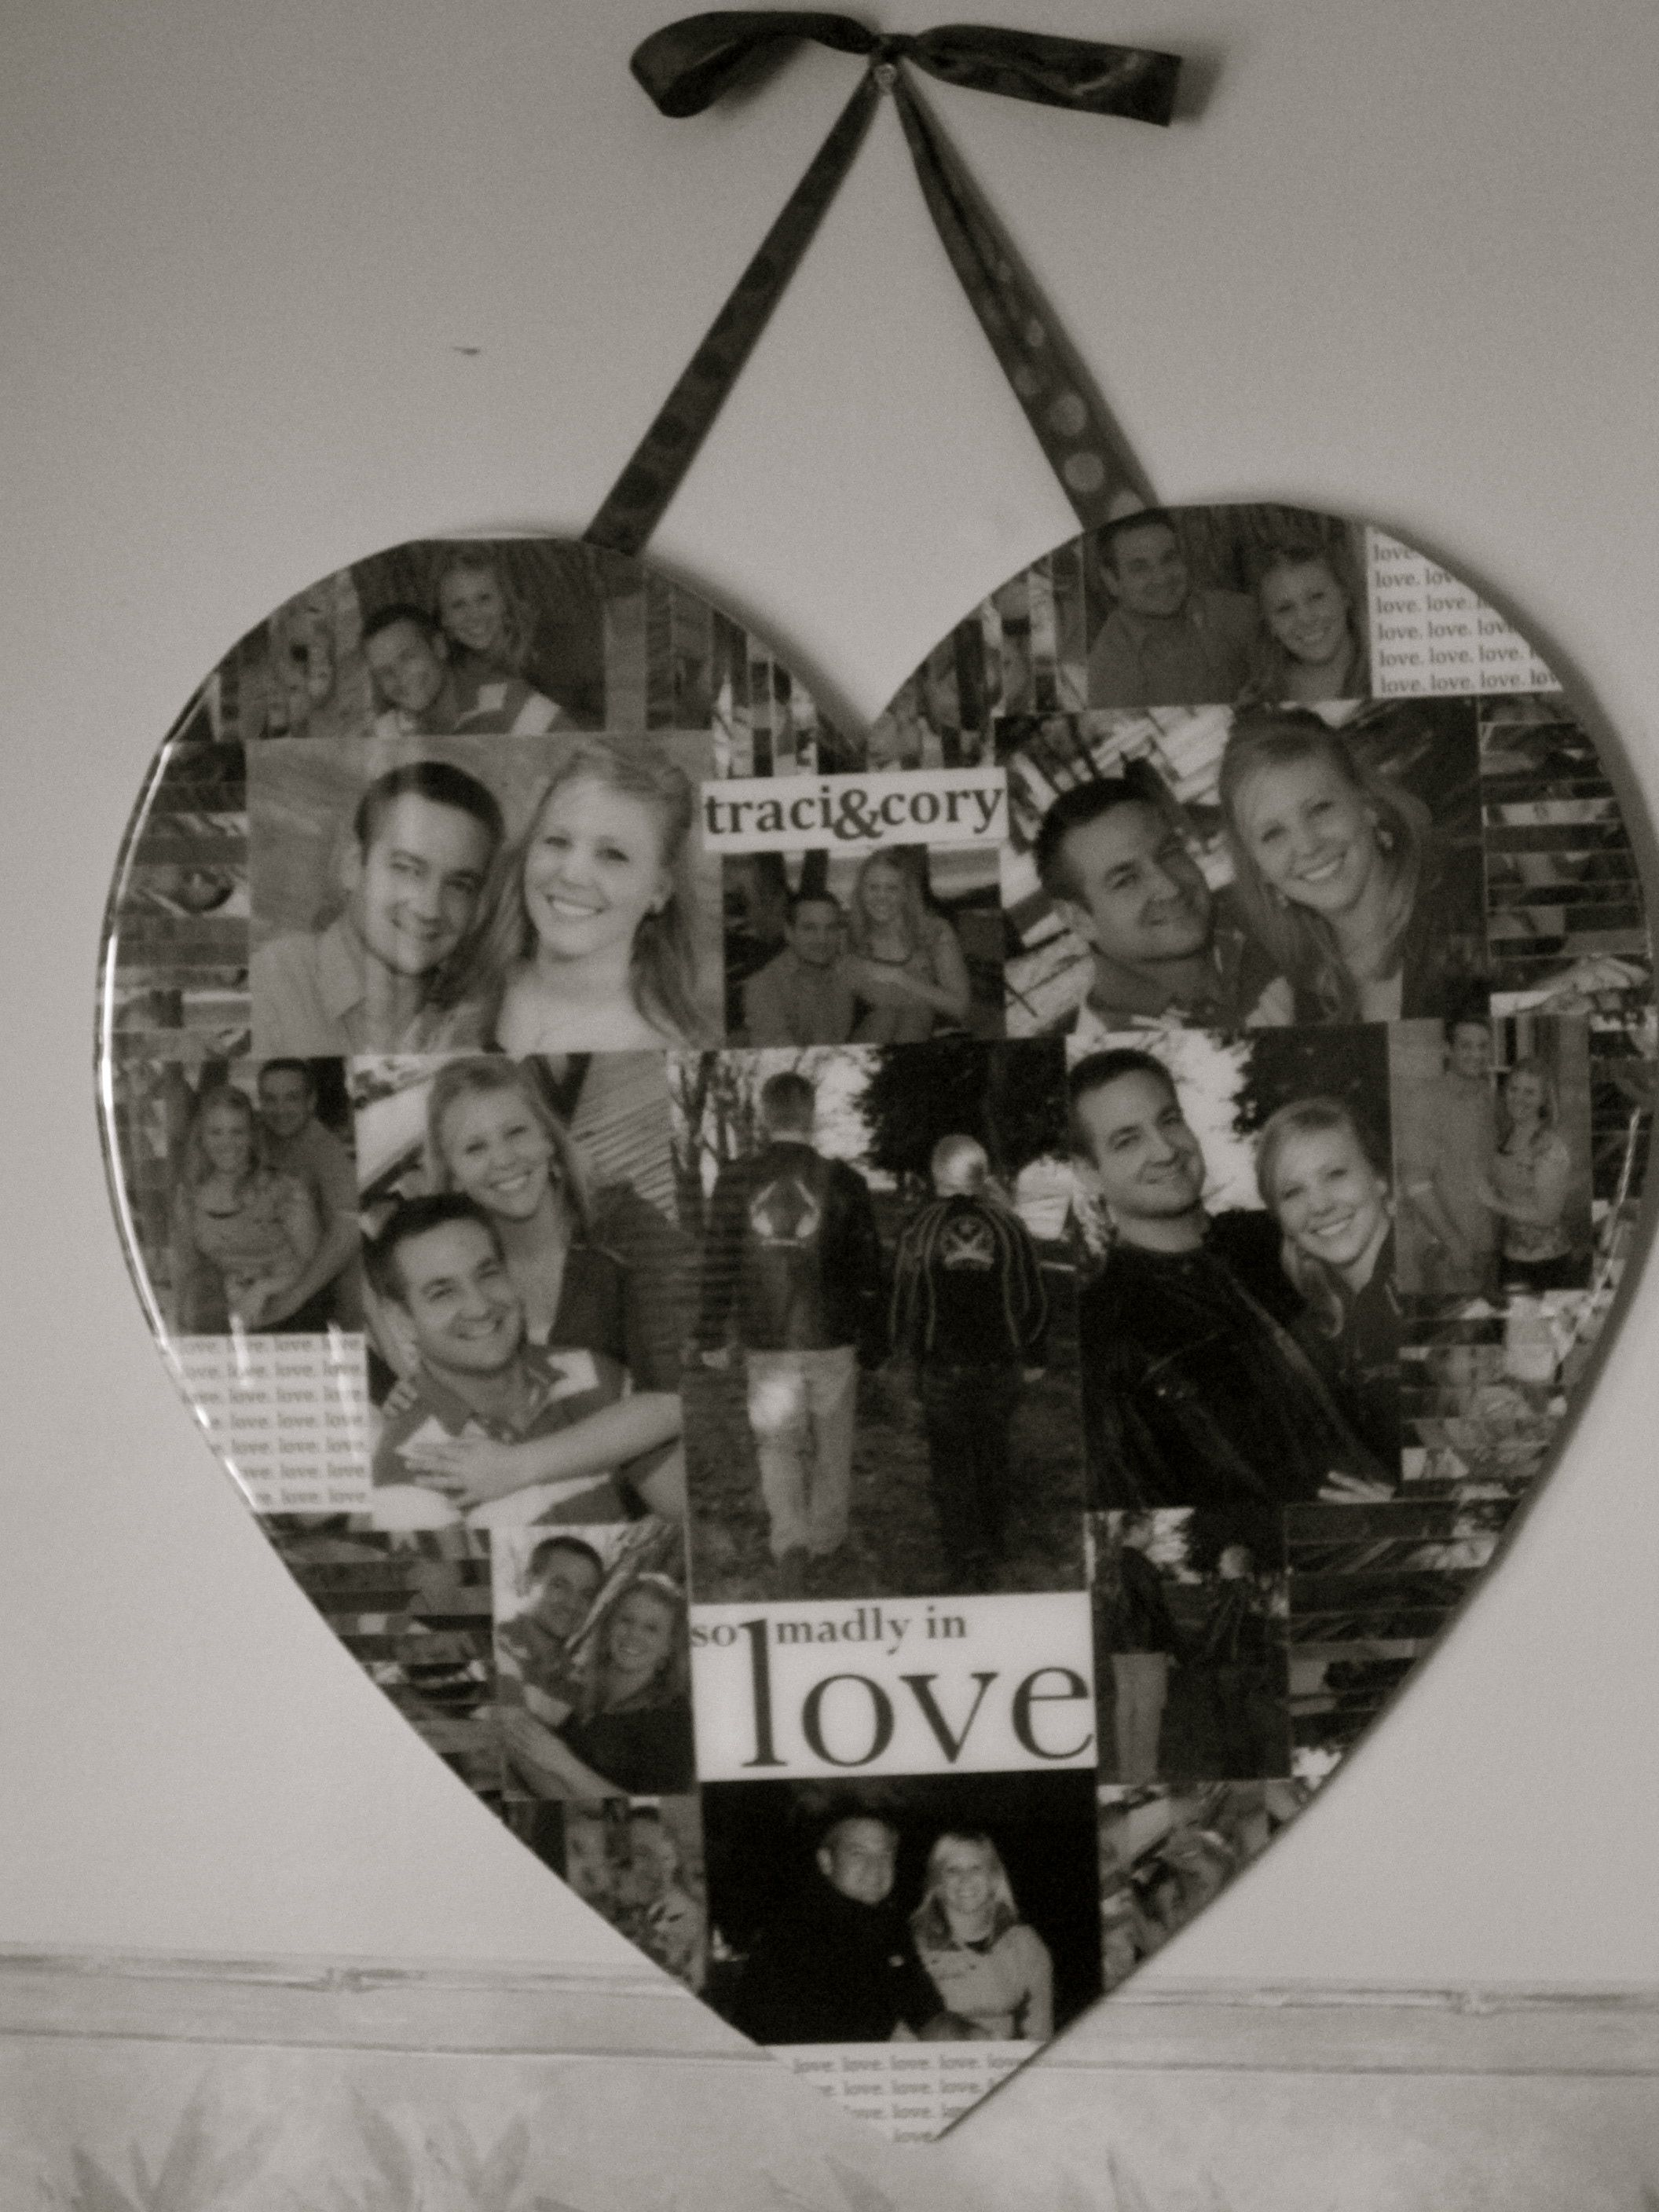 i have made a collage for my best friend with her husband as wedding